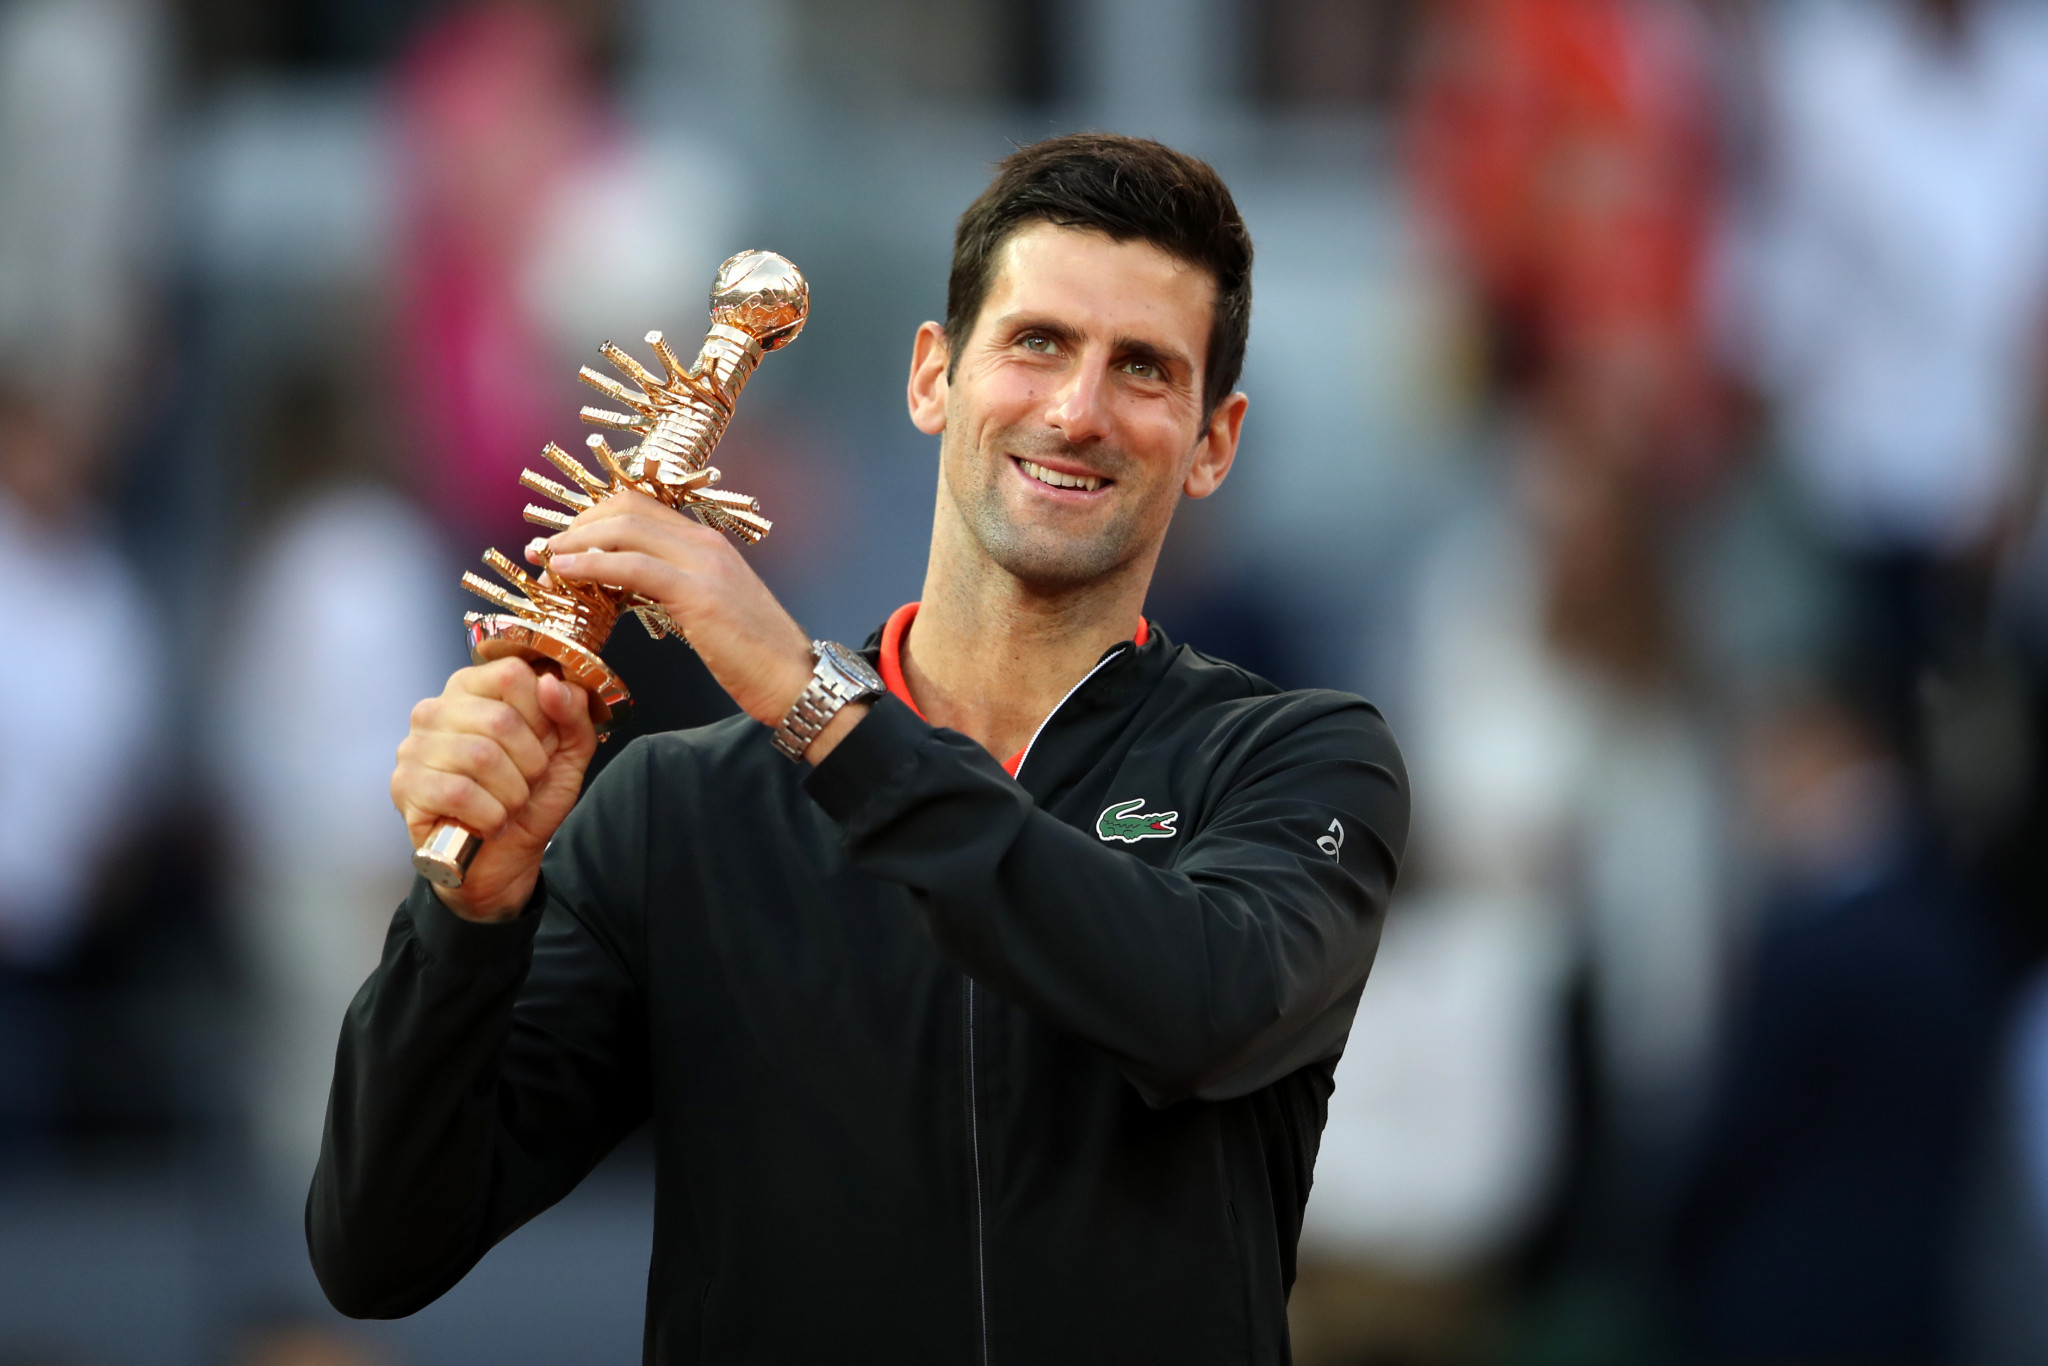 World number one Djokovic beats Tsitsipas to win Madrid Open